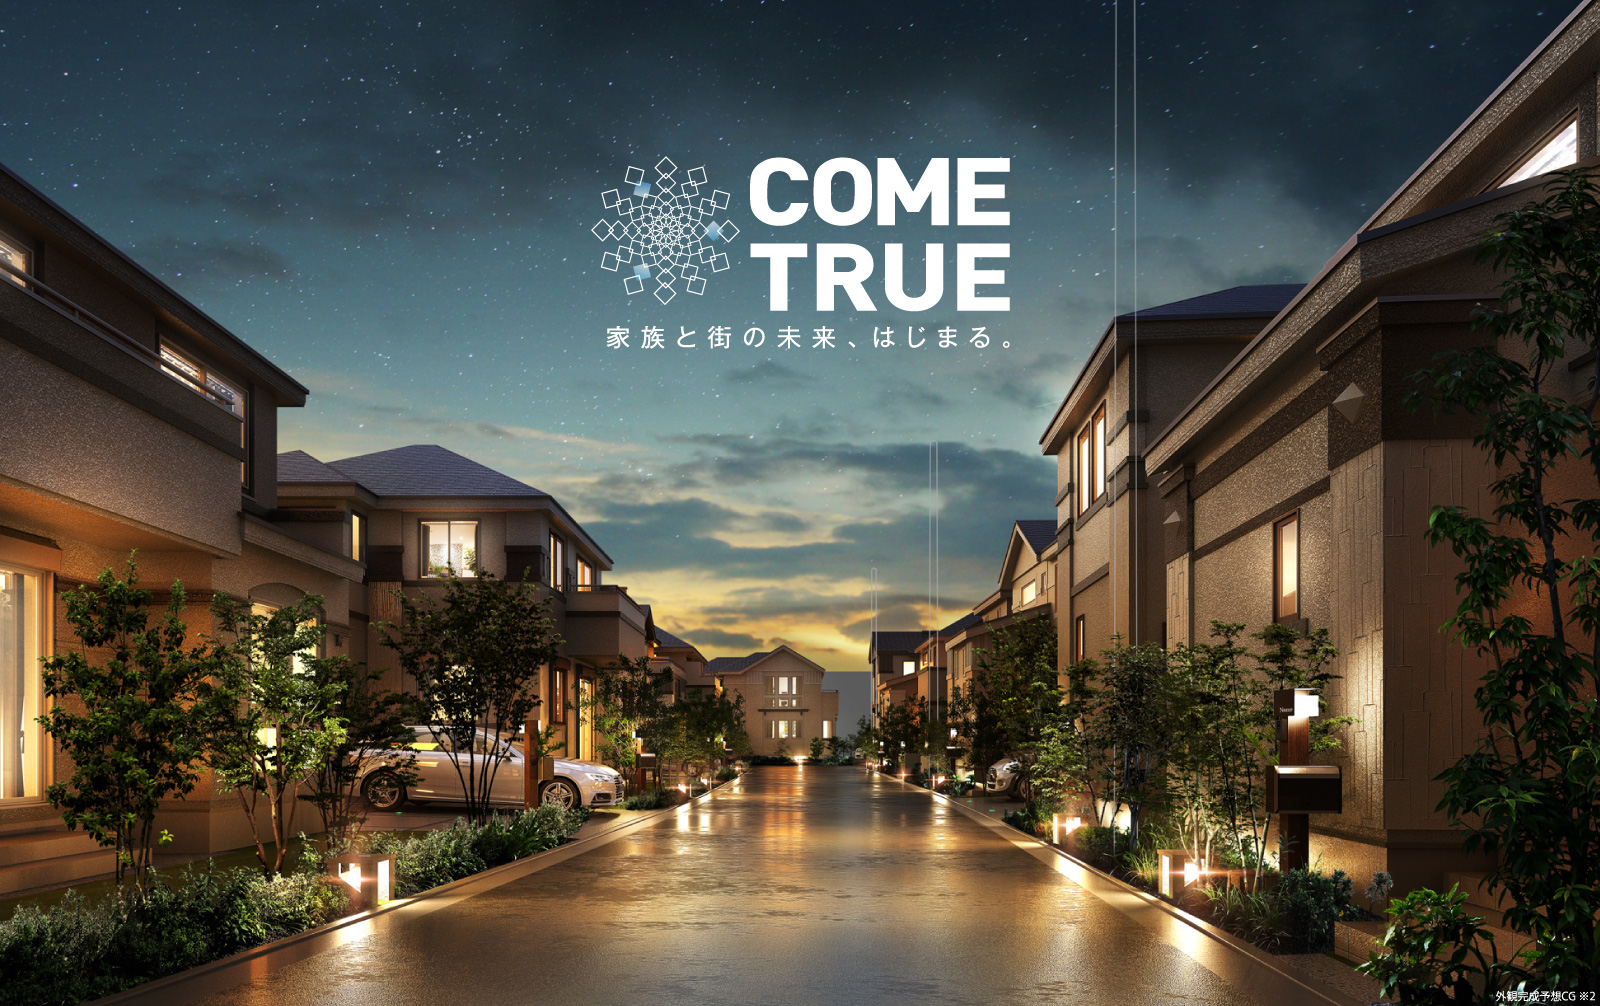 Come True その想いを、かたちに。